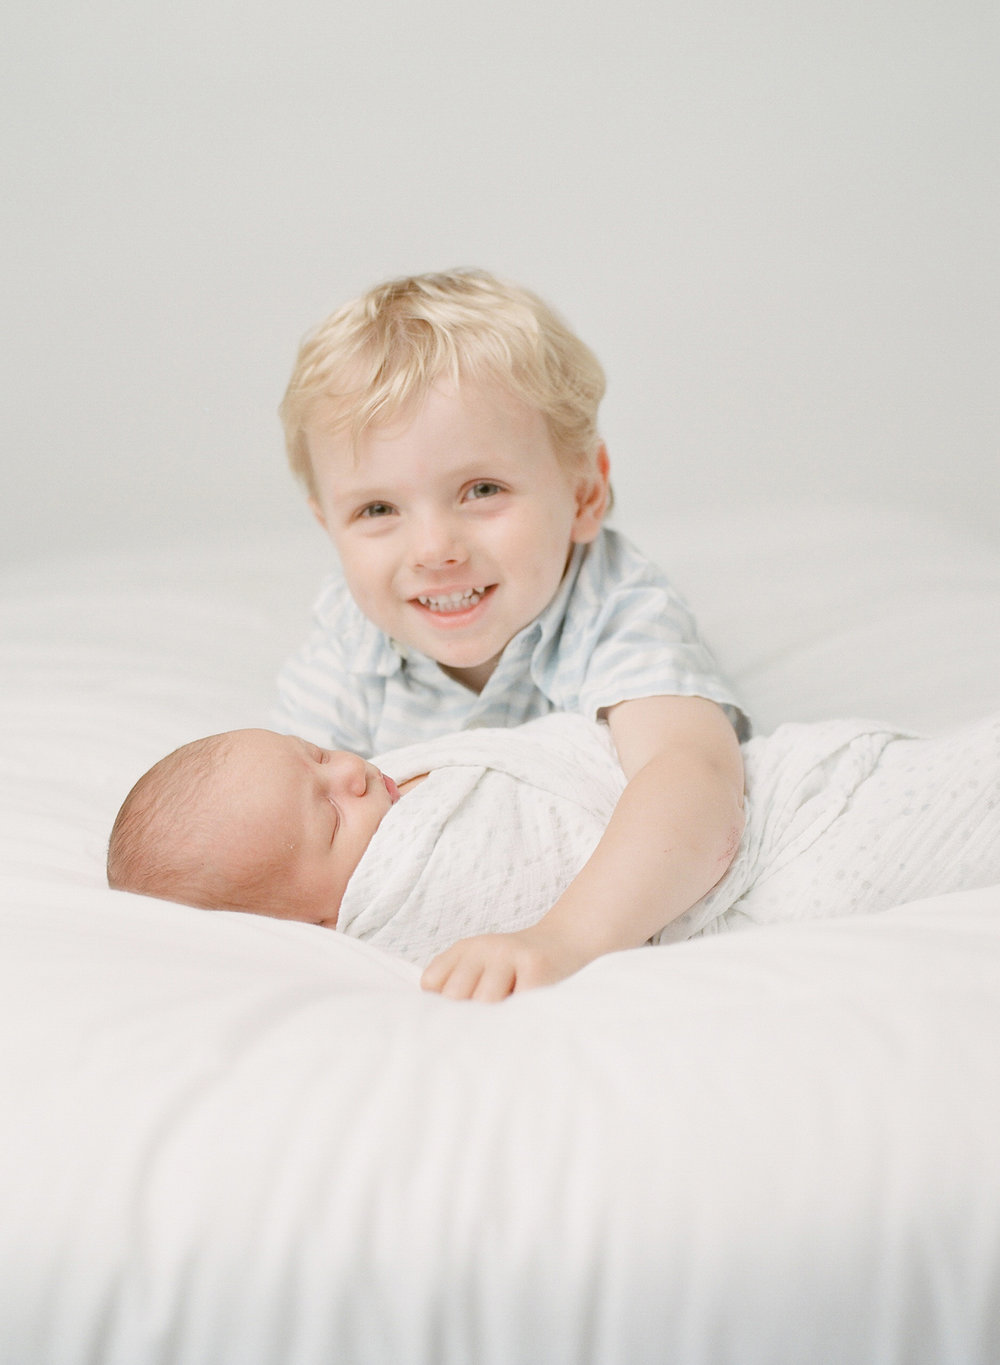 Newborn photographer Seattle | Sandra Coan | Baby and brother photographed on film